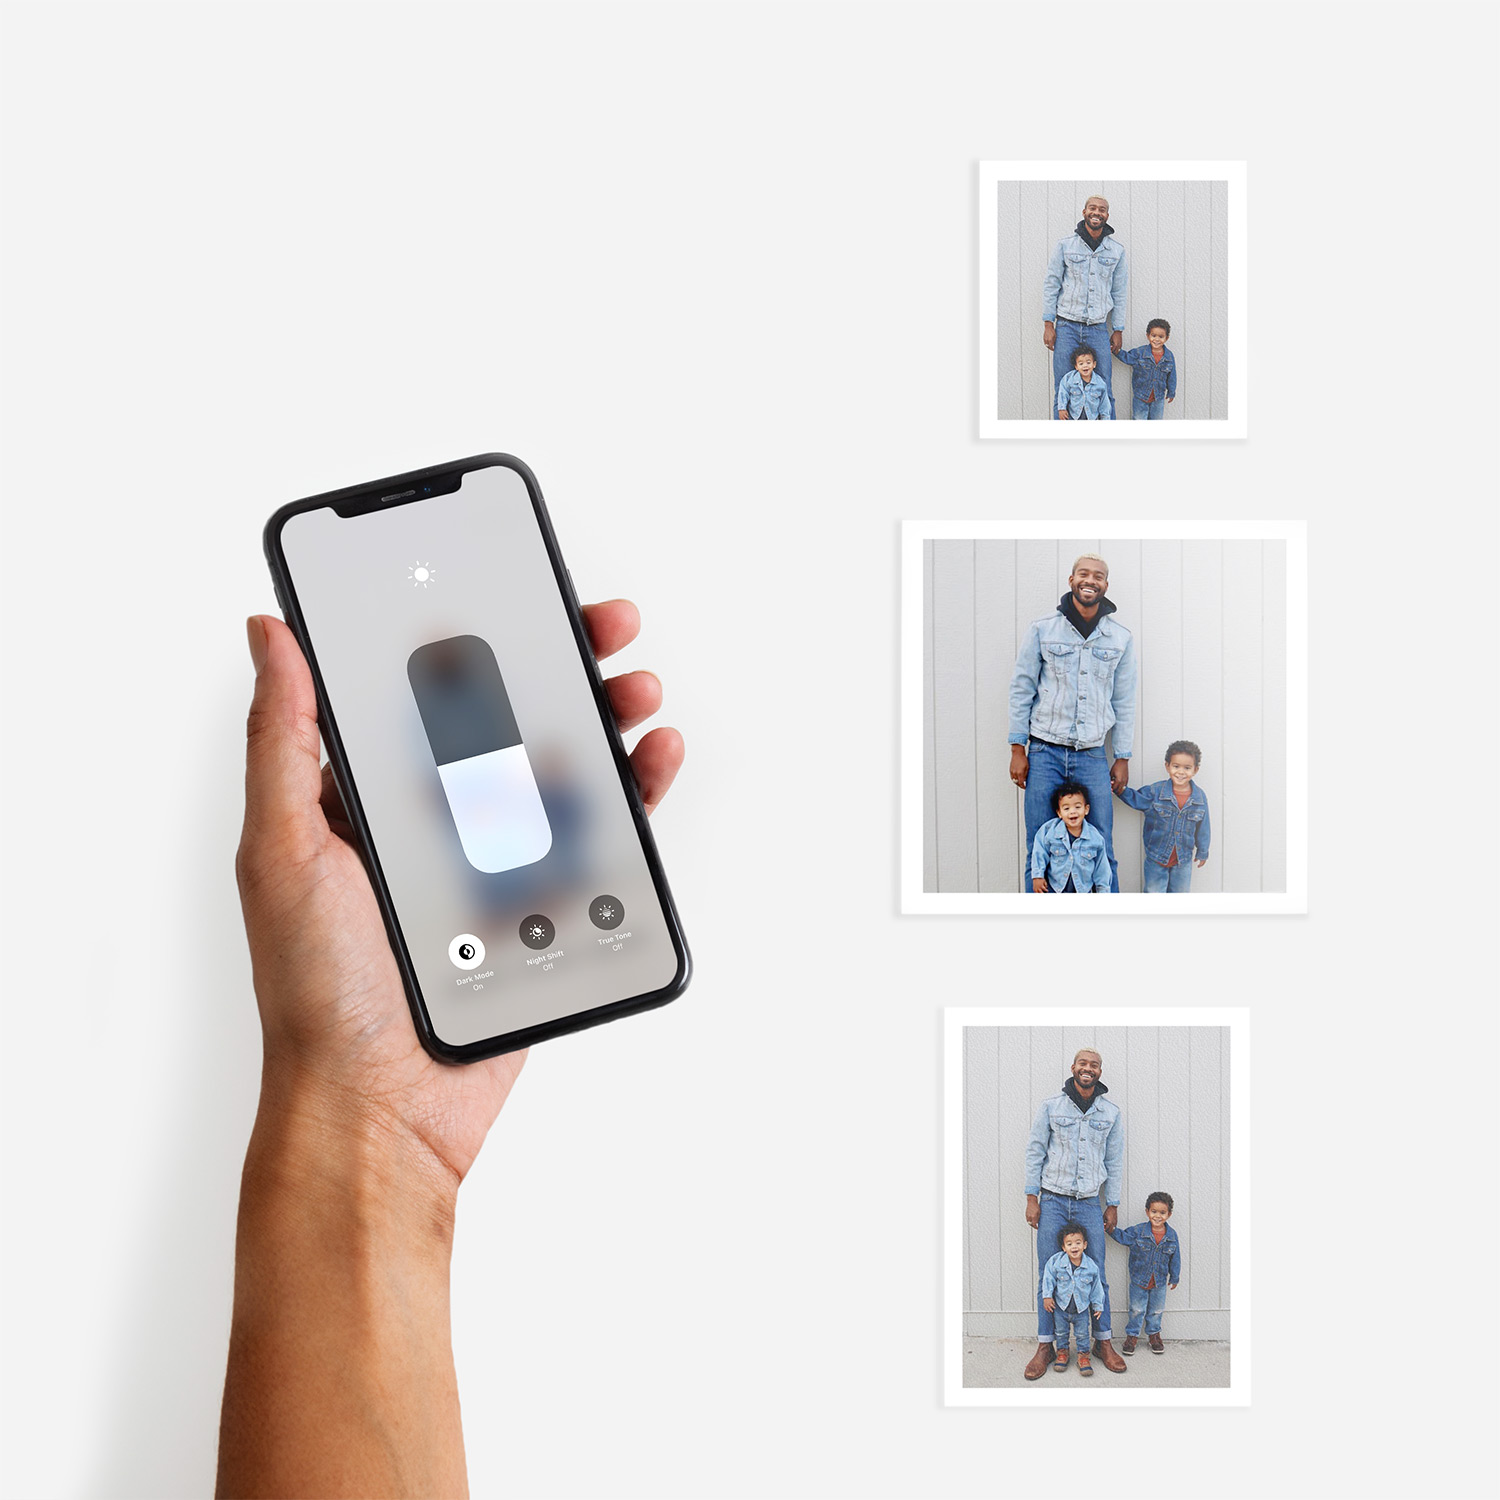 Hand adjusting screen brightness on an iphone next to three Artifact Uprising photo prints featuring family photos of a father and their children